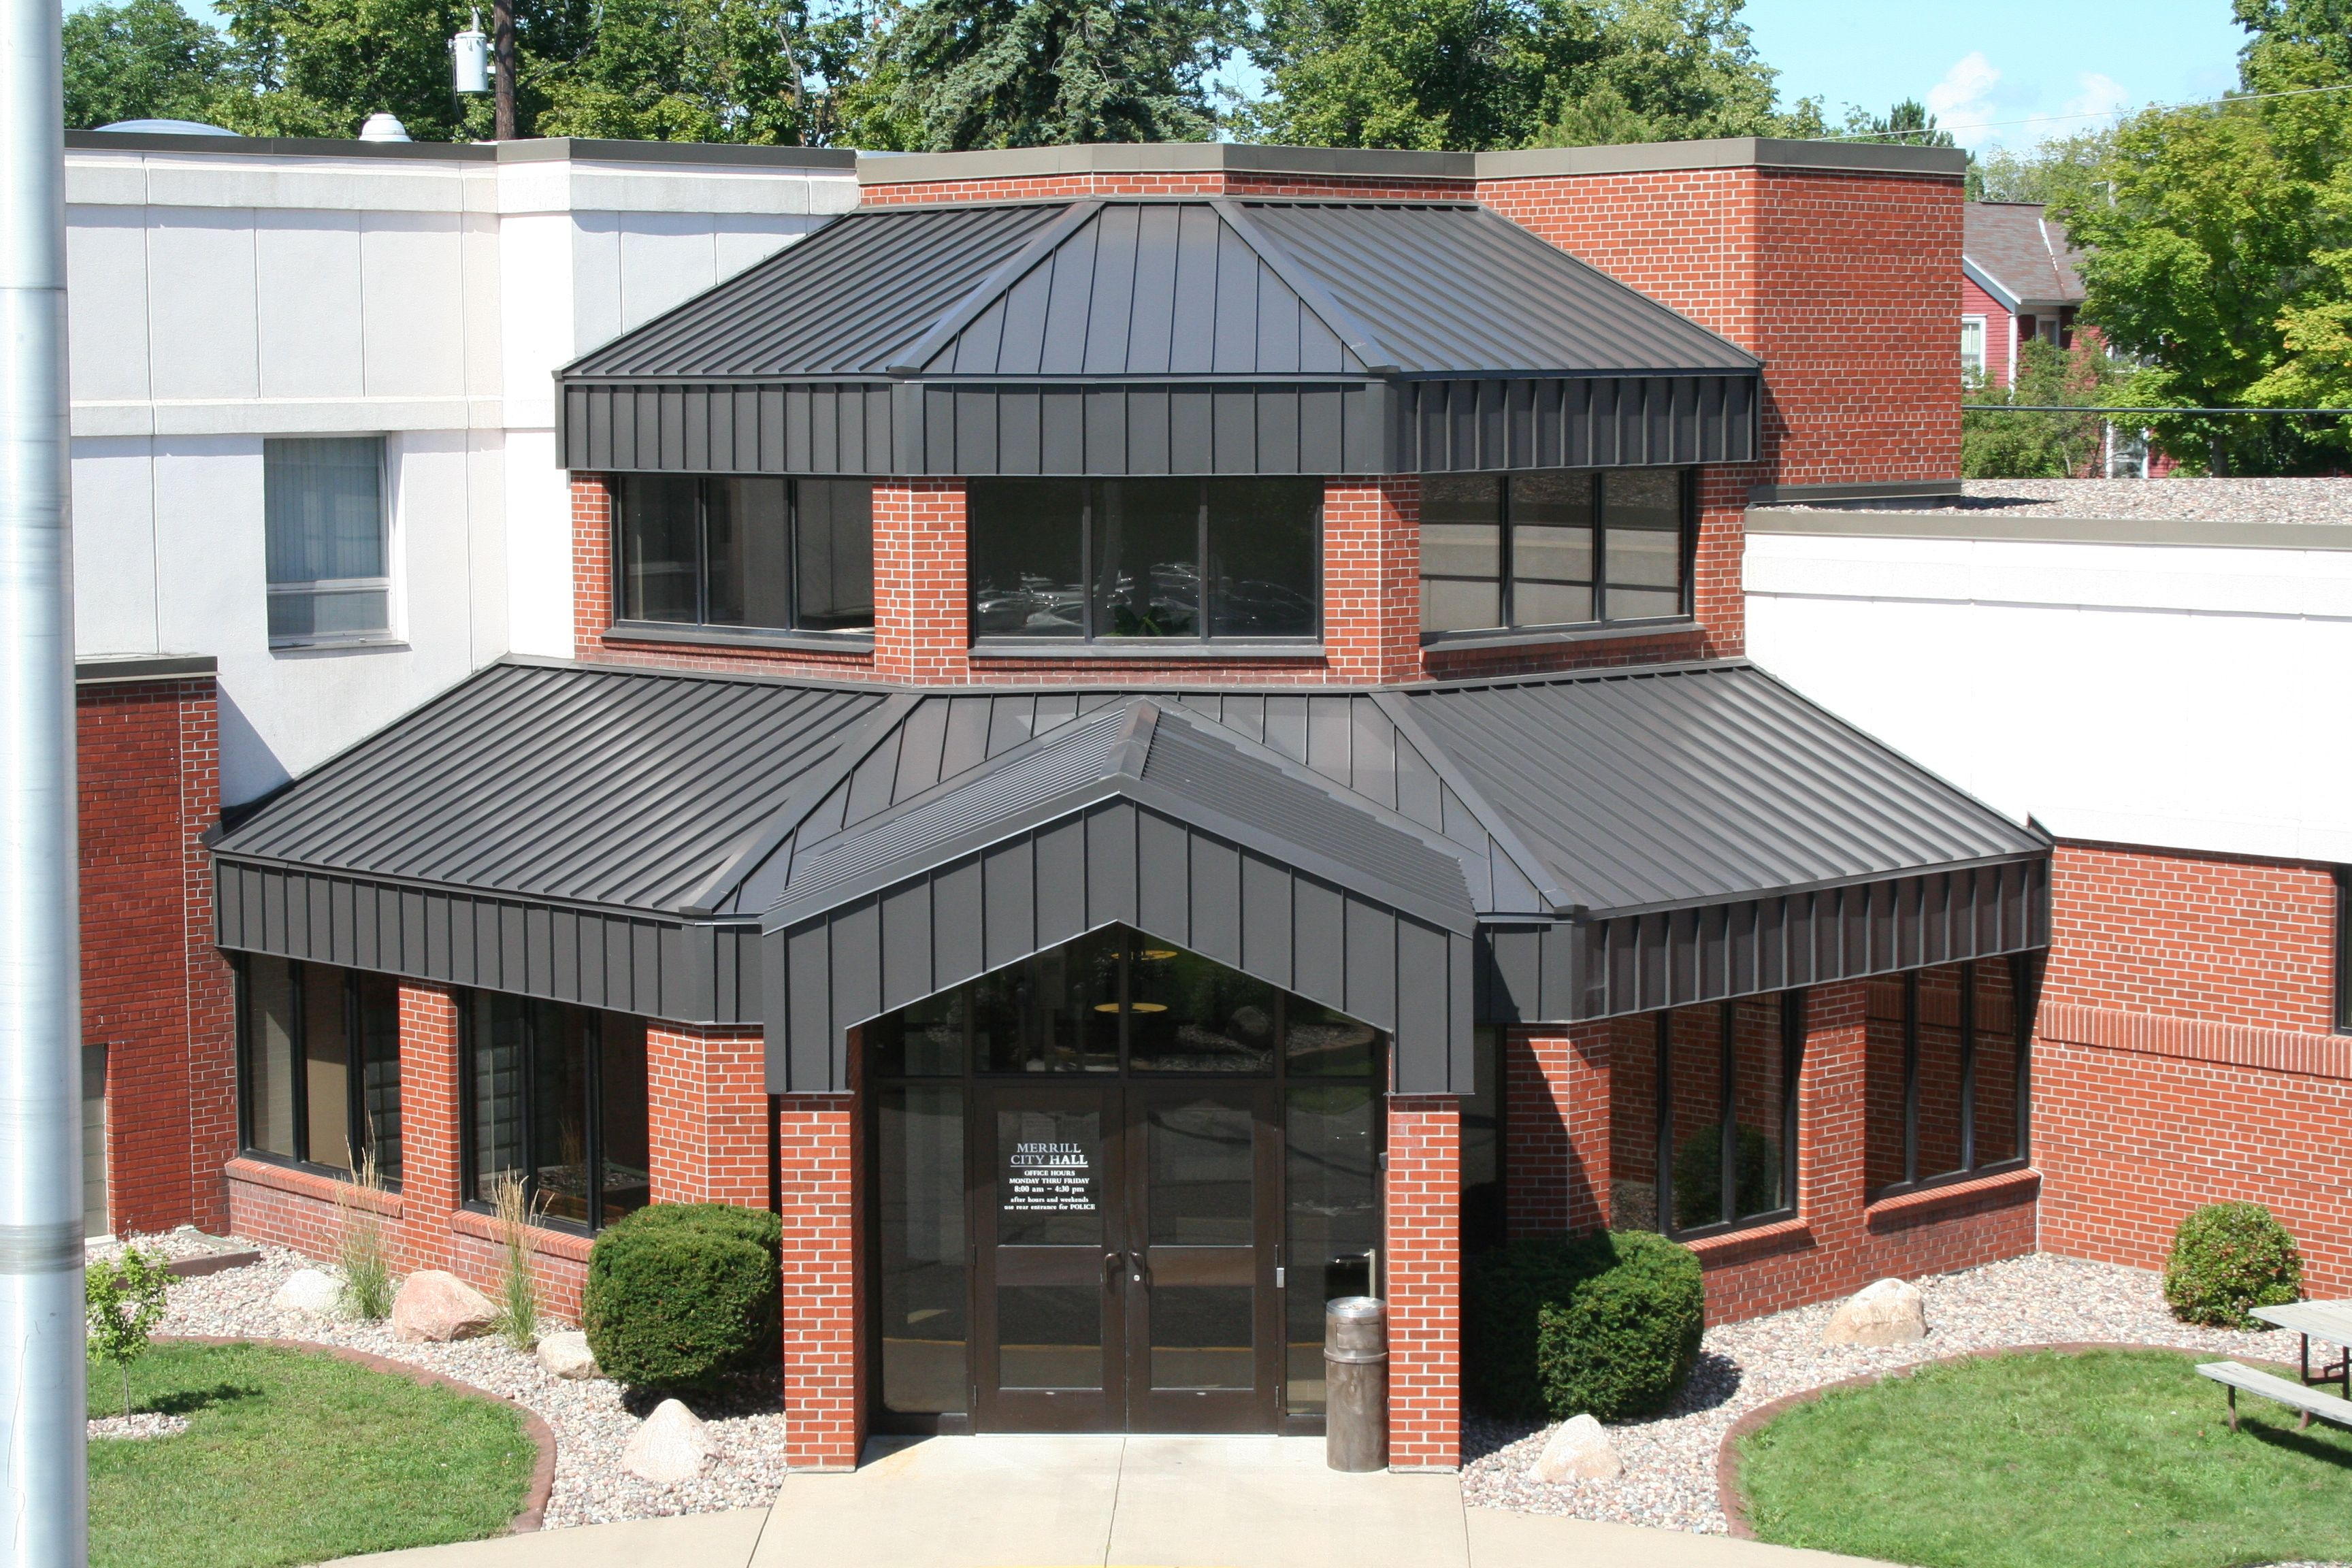 Standing Seam Metal Roof In Musket Gray Metal Provided By Coated Metals Group Www Cmgmetals Com Projec House Exterior Standing Seam Metal Roof Standing Seam